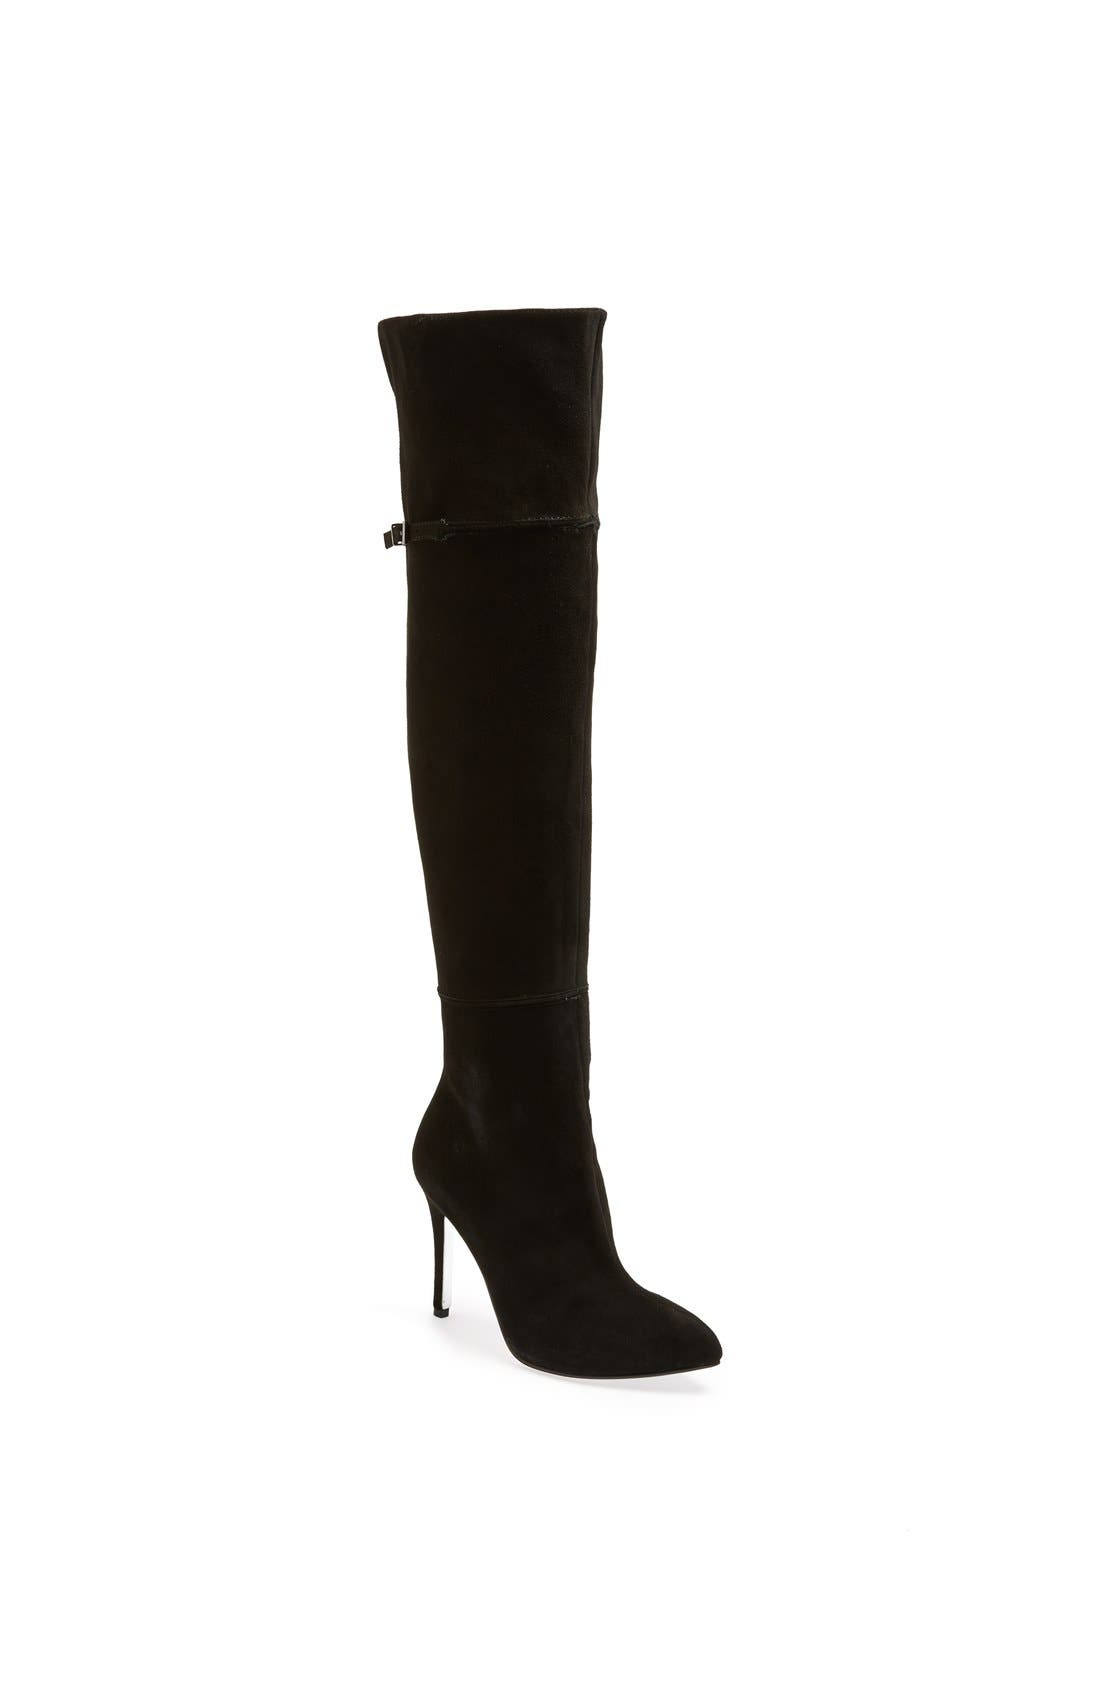 'Cassie' Over the Knee Boot,                             Main thumbnail 1, color,                             Black